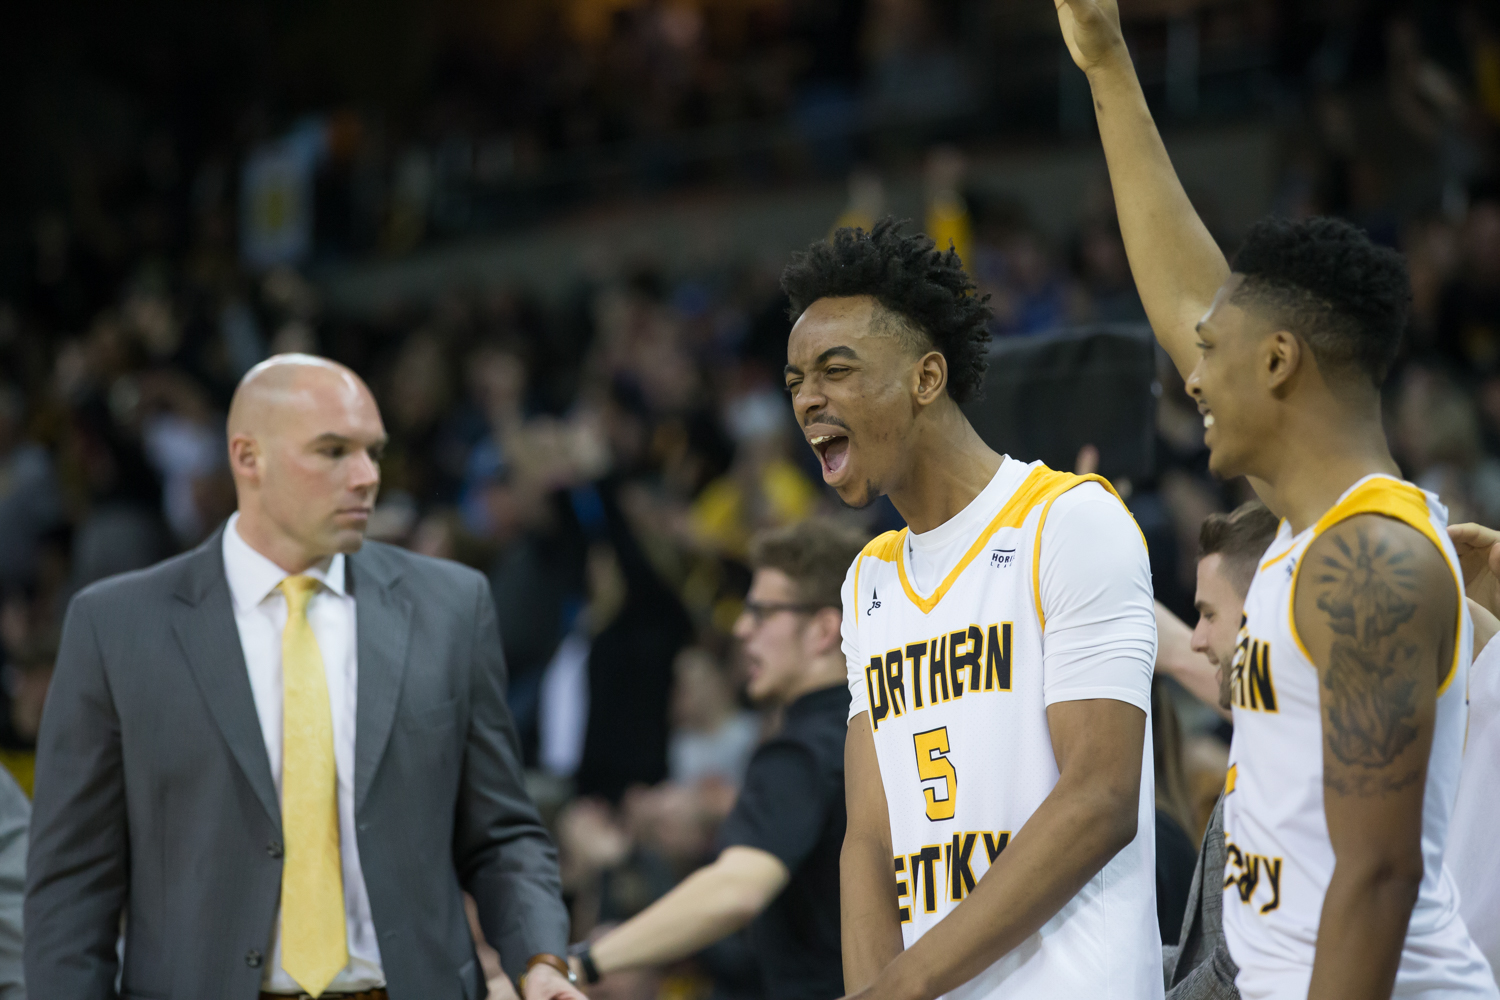 Jalen Tate (5) celebrates a basket by the Norse during the game against Green Bay.